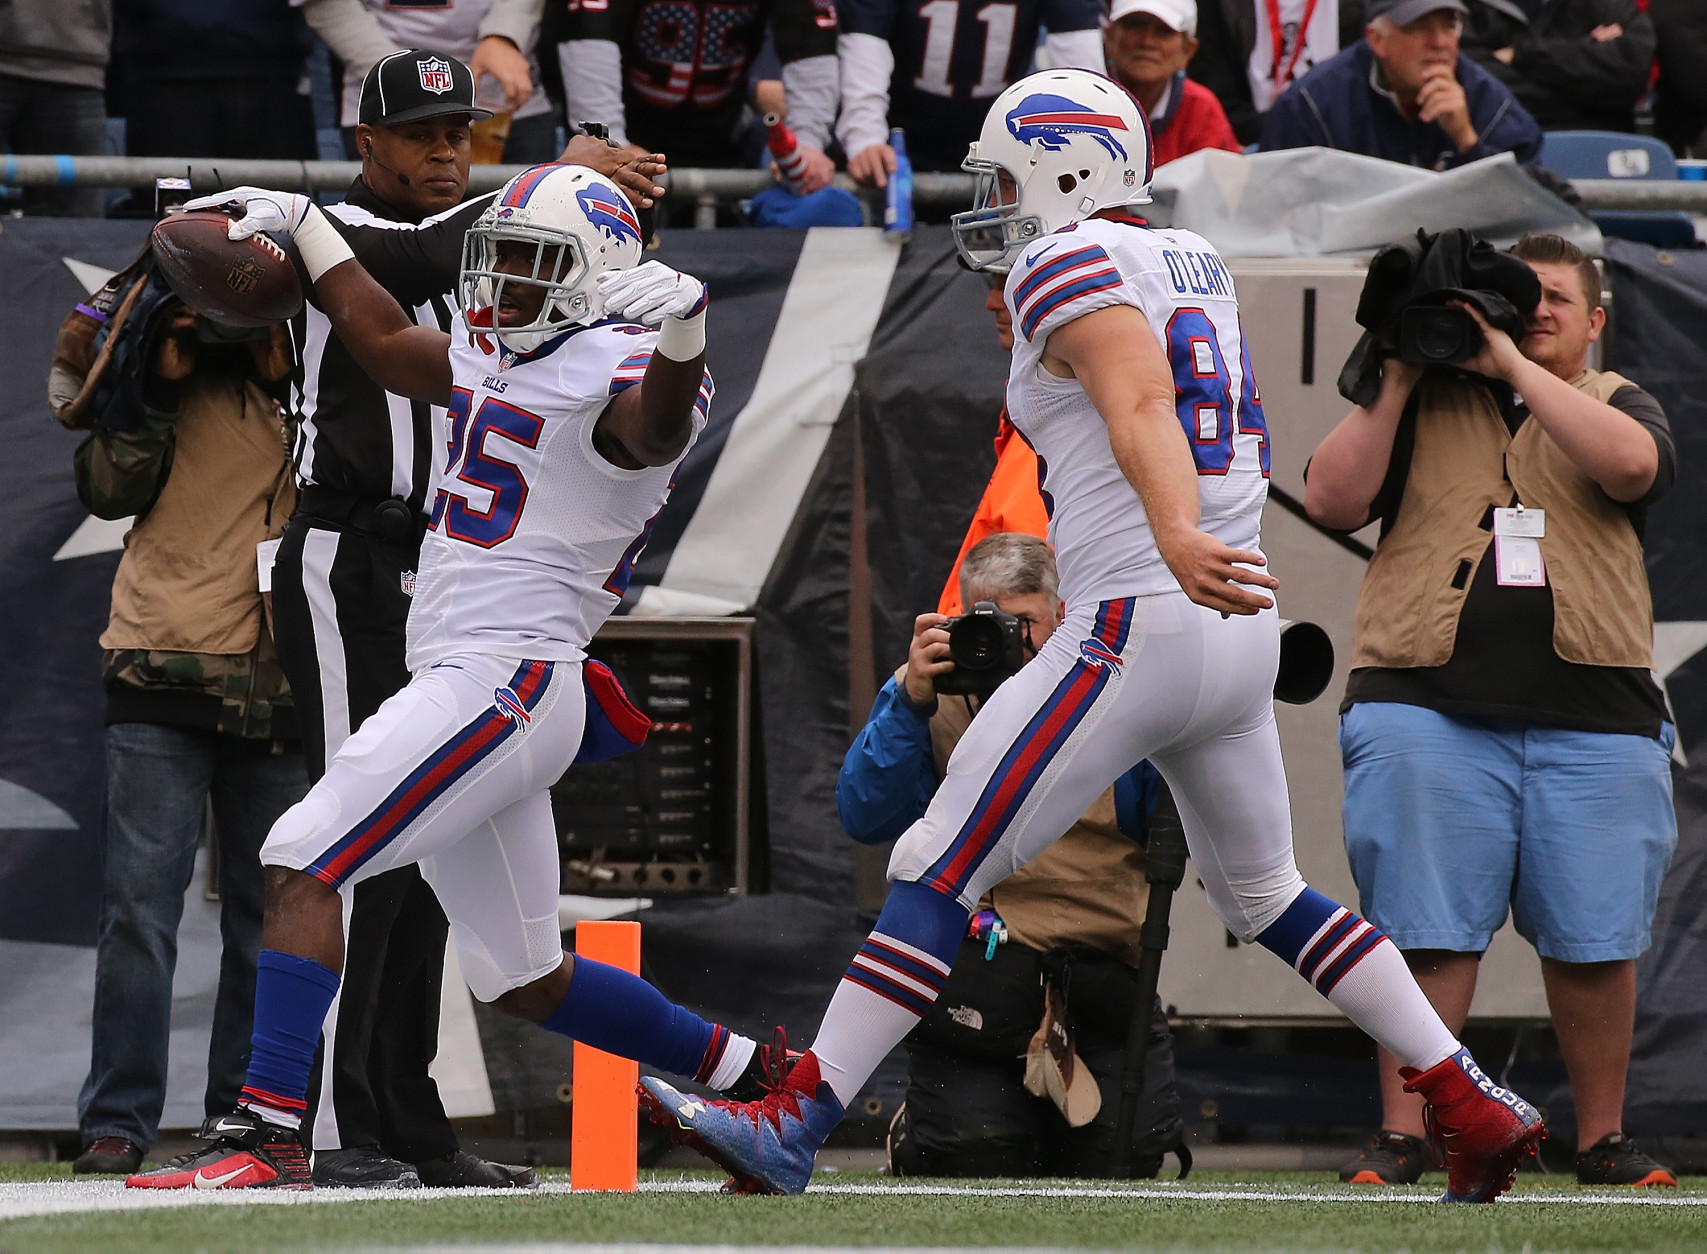 FOXBORO, MA - OCTOBER 02: LeSean McCoy #25 of the Buffalo Bills scores a touchdown in the first half against the New England Patriots at Gillette Stadium on October 2, 2016 in Foxboro, Massachusetts. He was involved with an altercation with Robert Blanton #26 of the Buffalo Bills before the start of their game. (Photo by Jim Rogash/Getty Images)